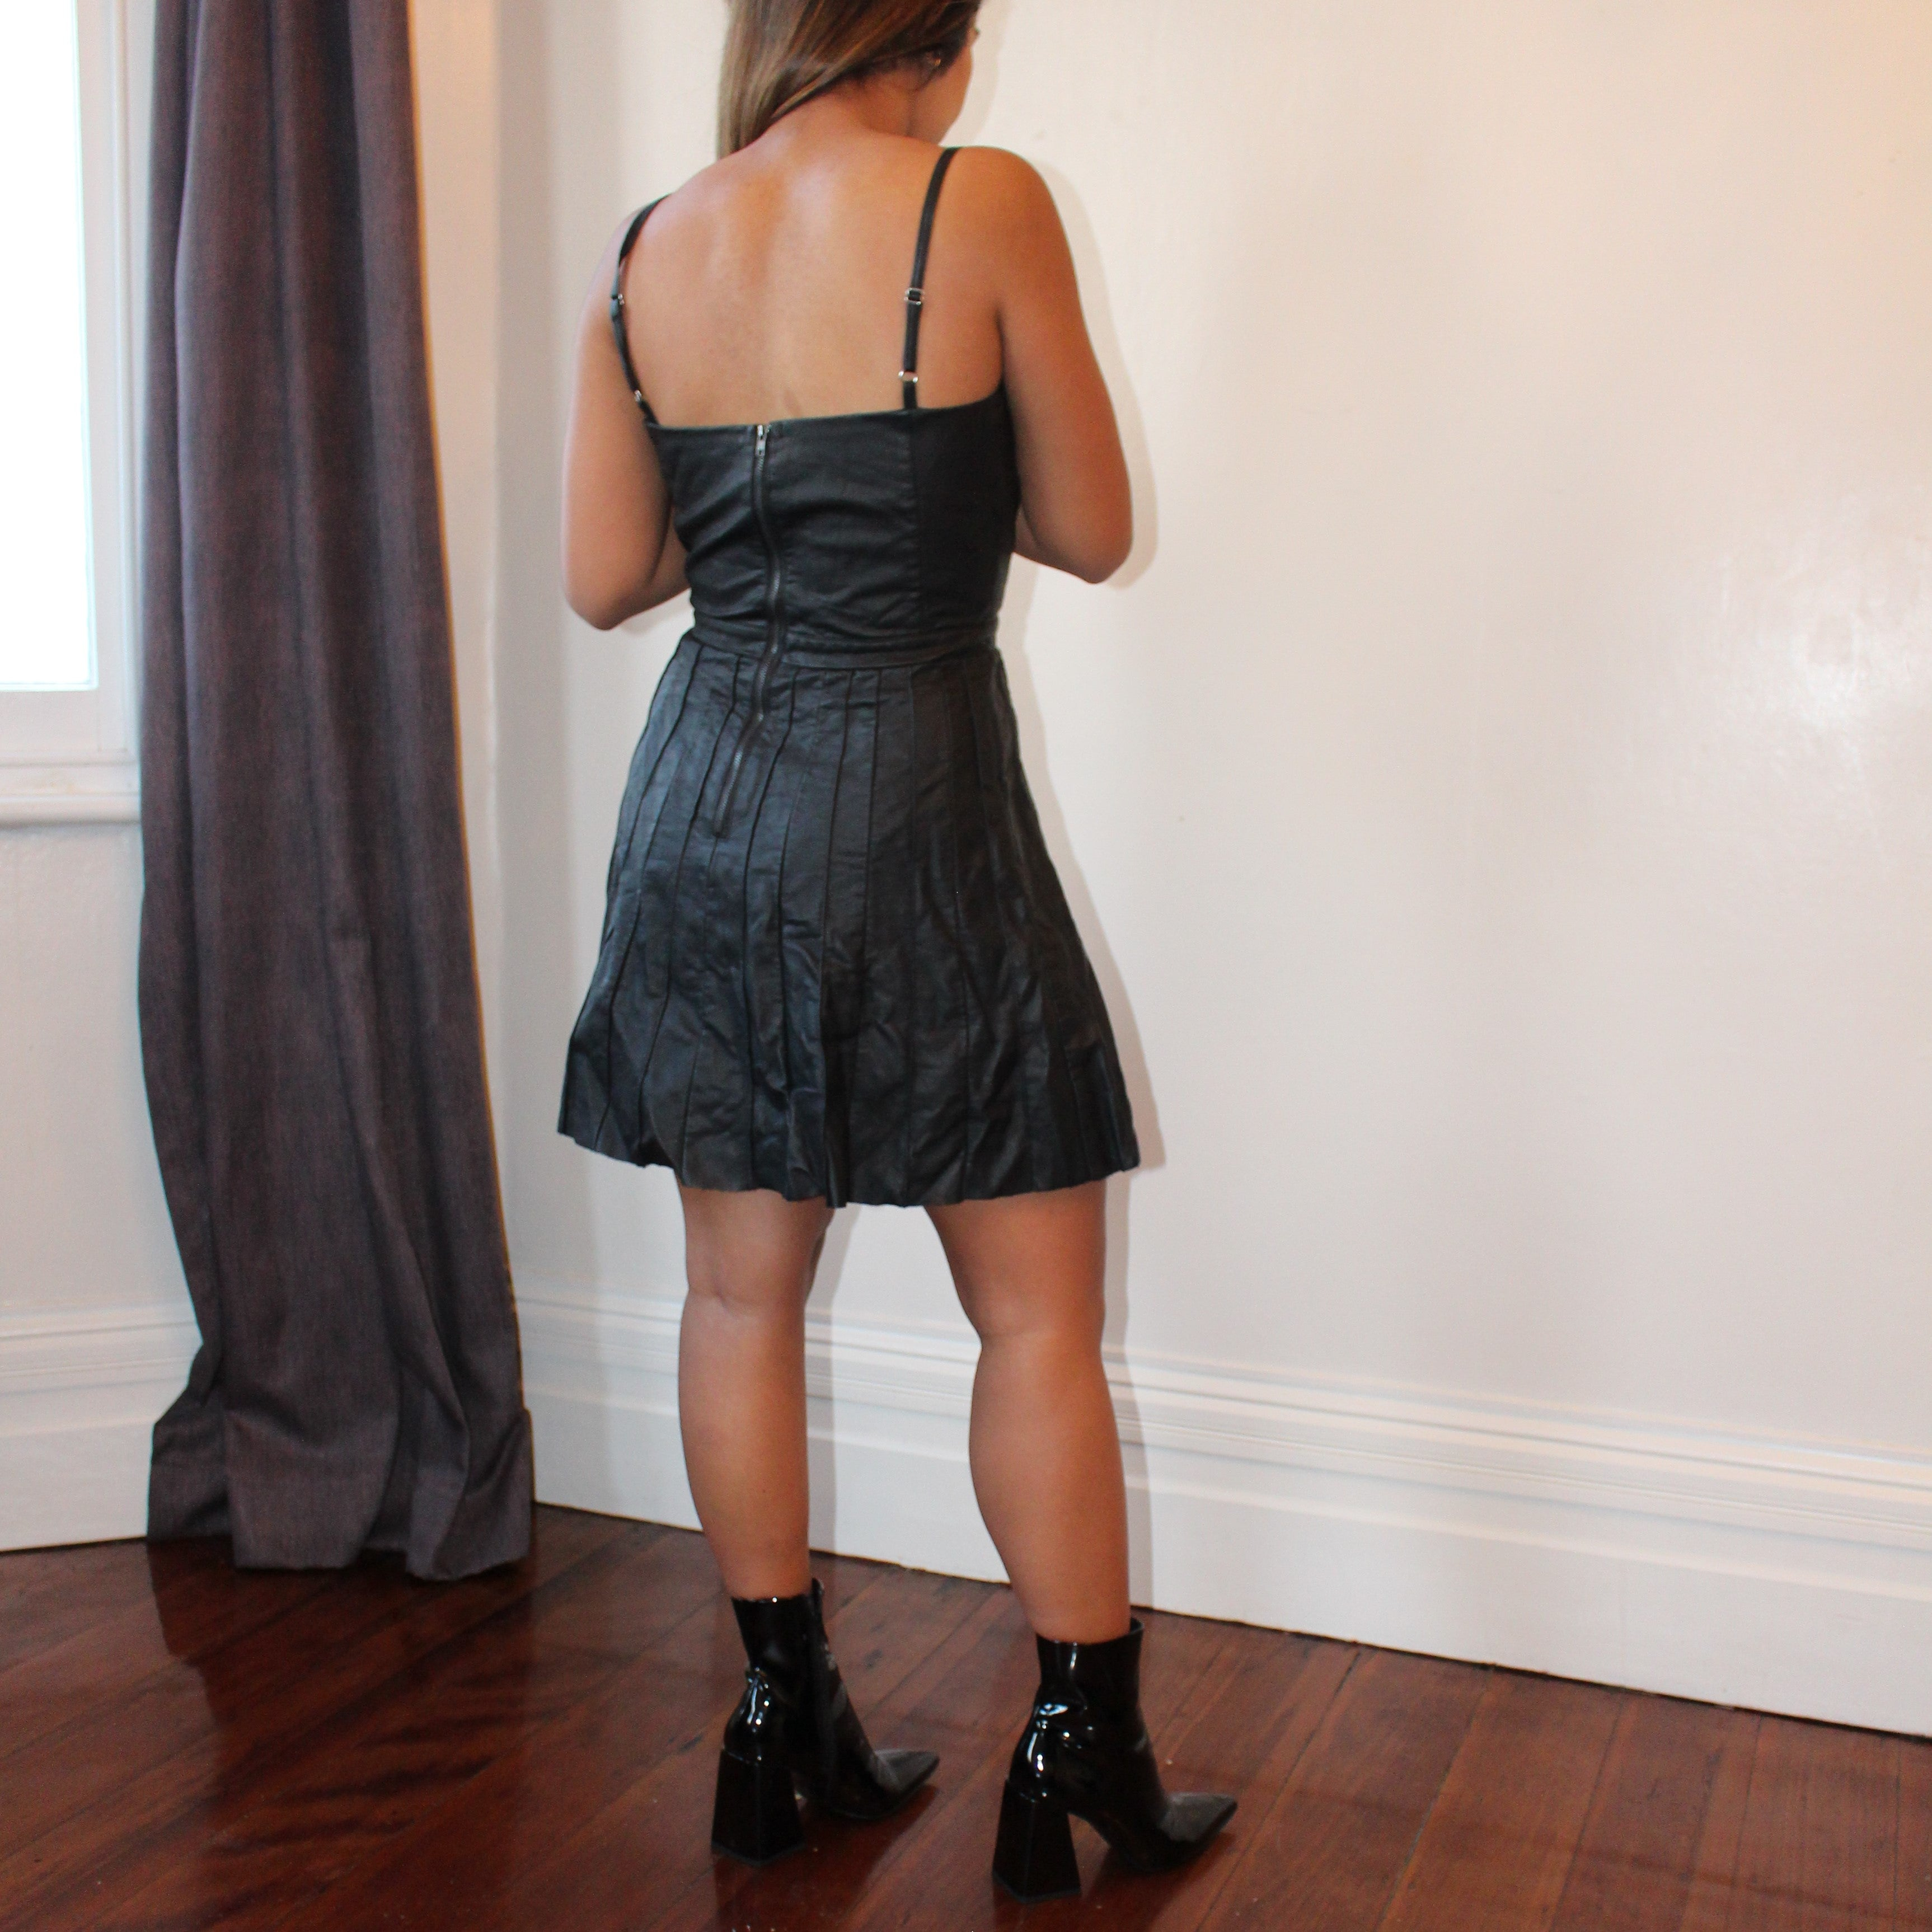 Leather Lady Sweetheart Dress - ZoMa Collective